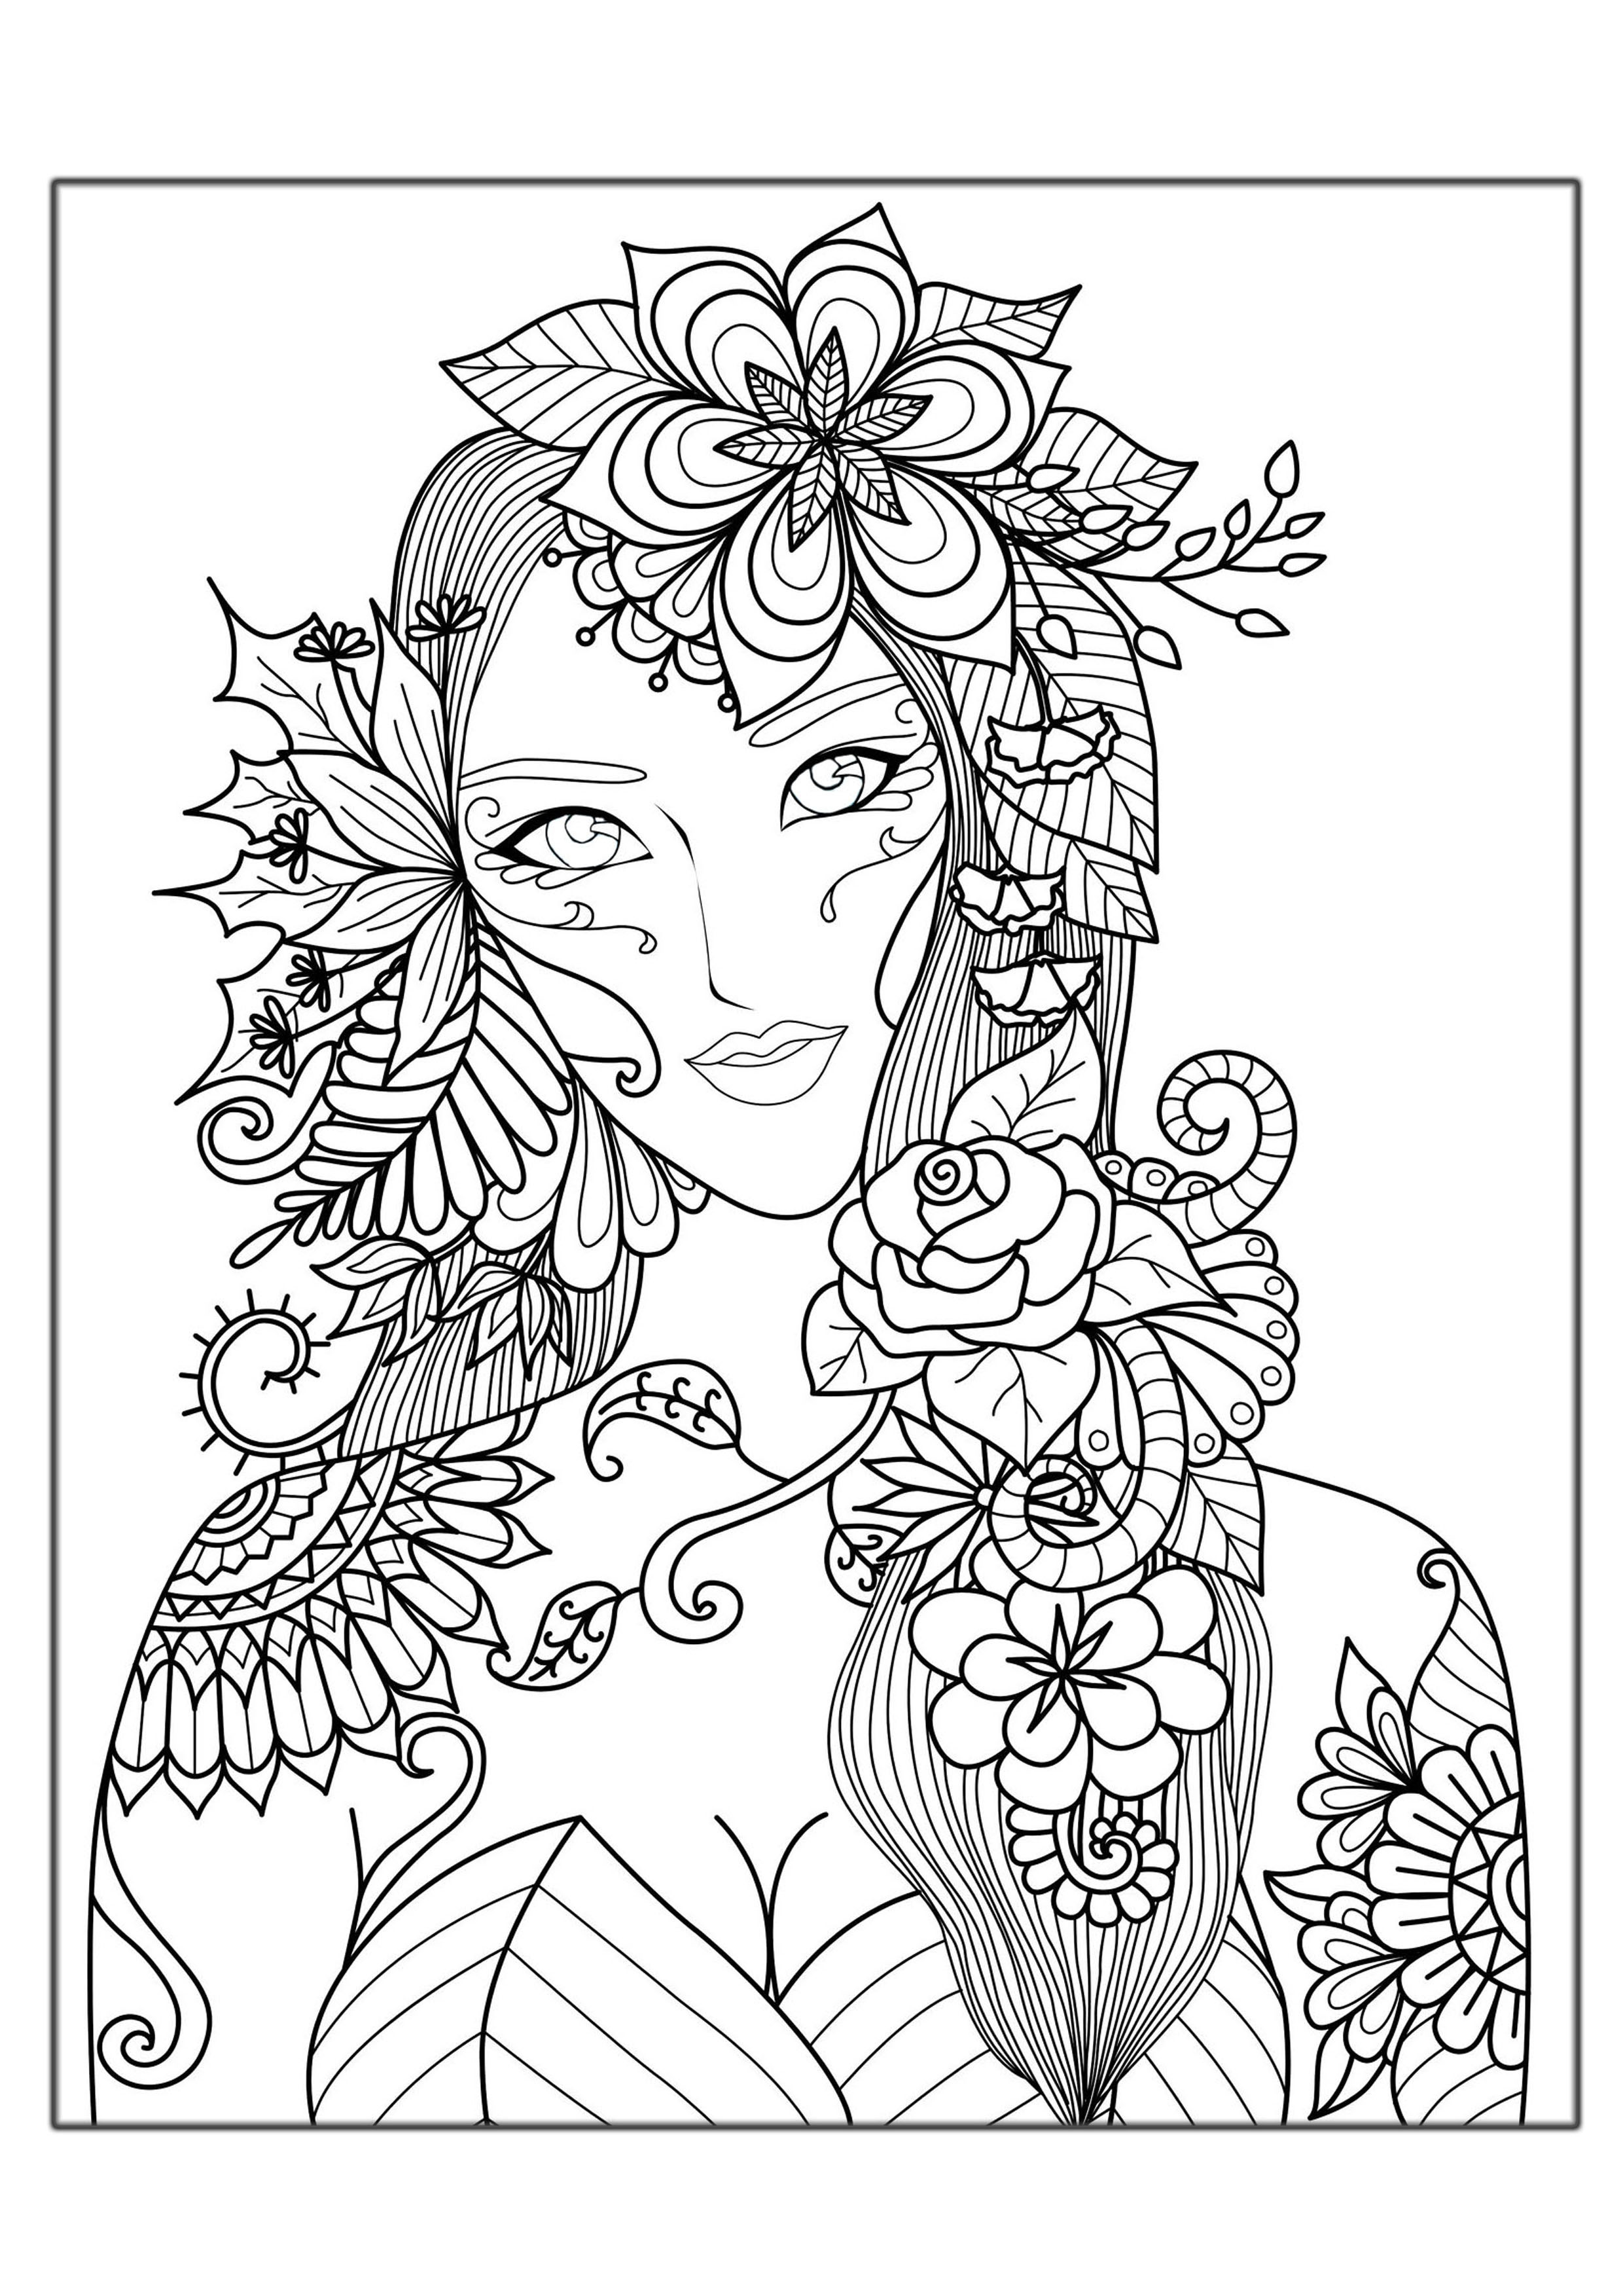 Coloring Pages For Women  Hard Coloring Pages for Adults Best Coloring Pages For Kids